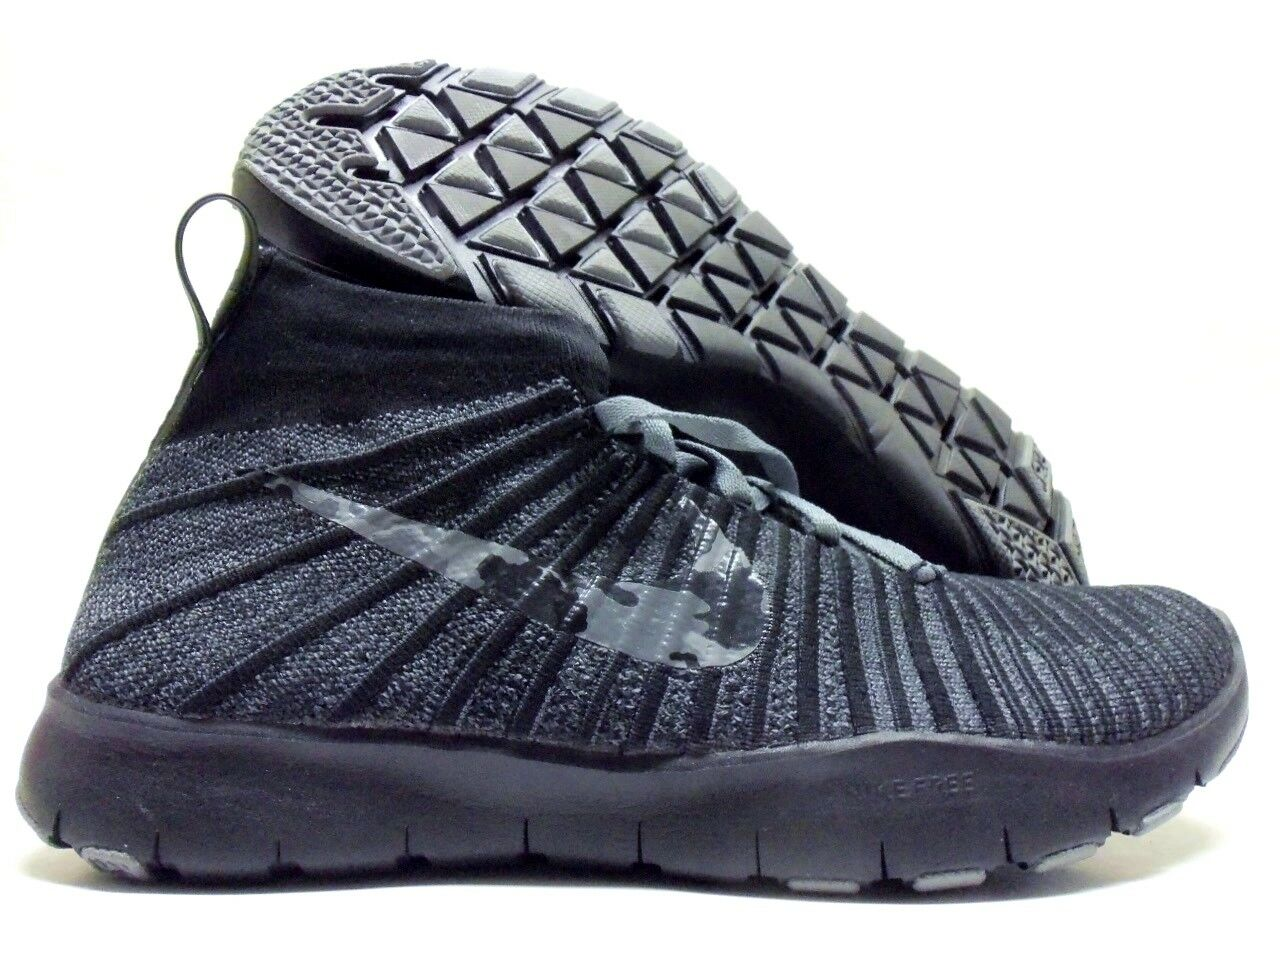 NIKE FREE RUN HIGH FLYKNIT ID BLACK/ANTHRACITE SIZE MEN'S 10.5 Price reduction